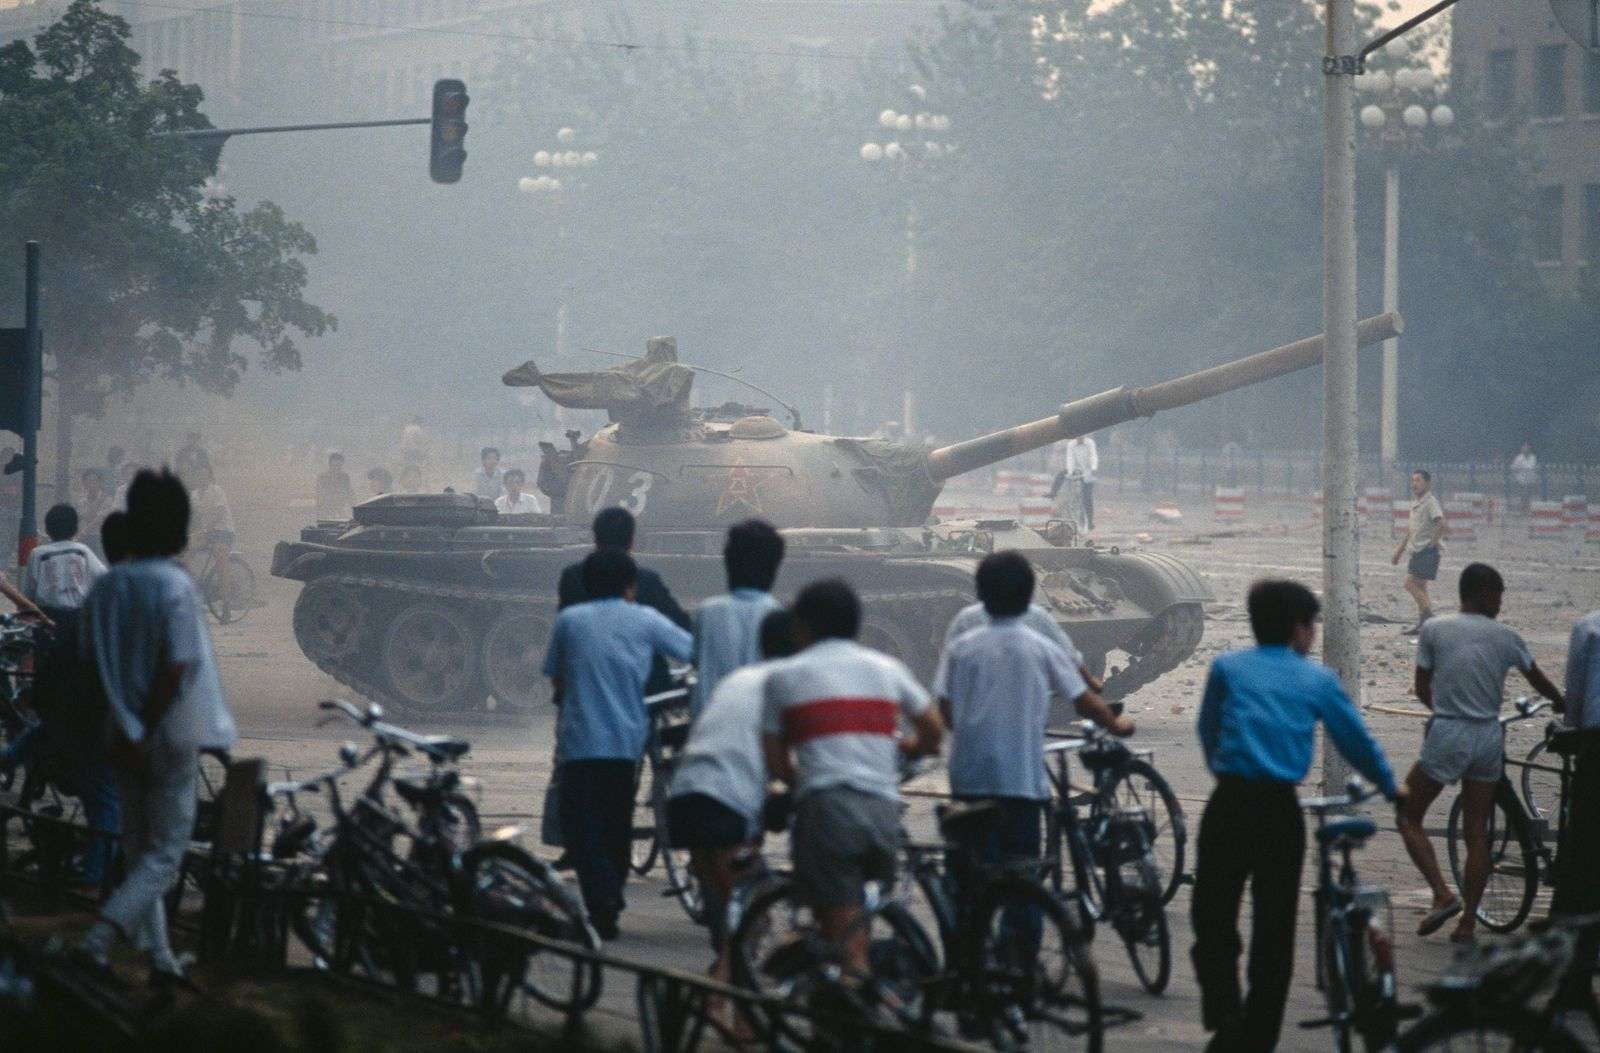 Chinese Army Crushes Tiananmen Square Protest